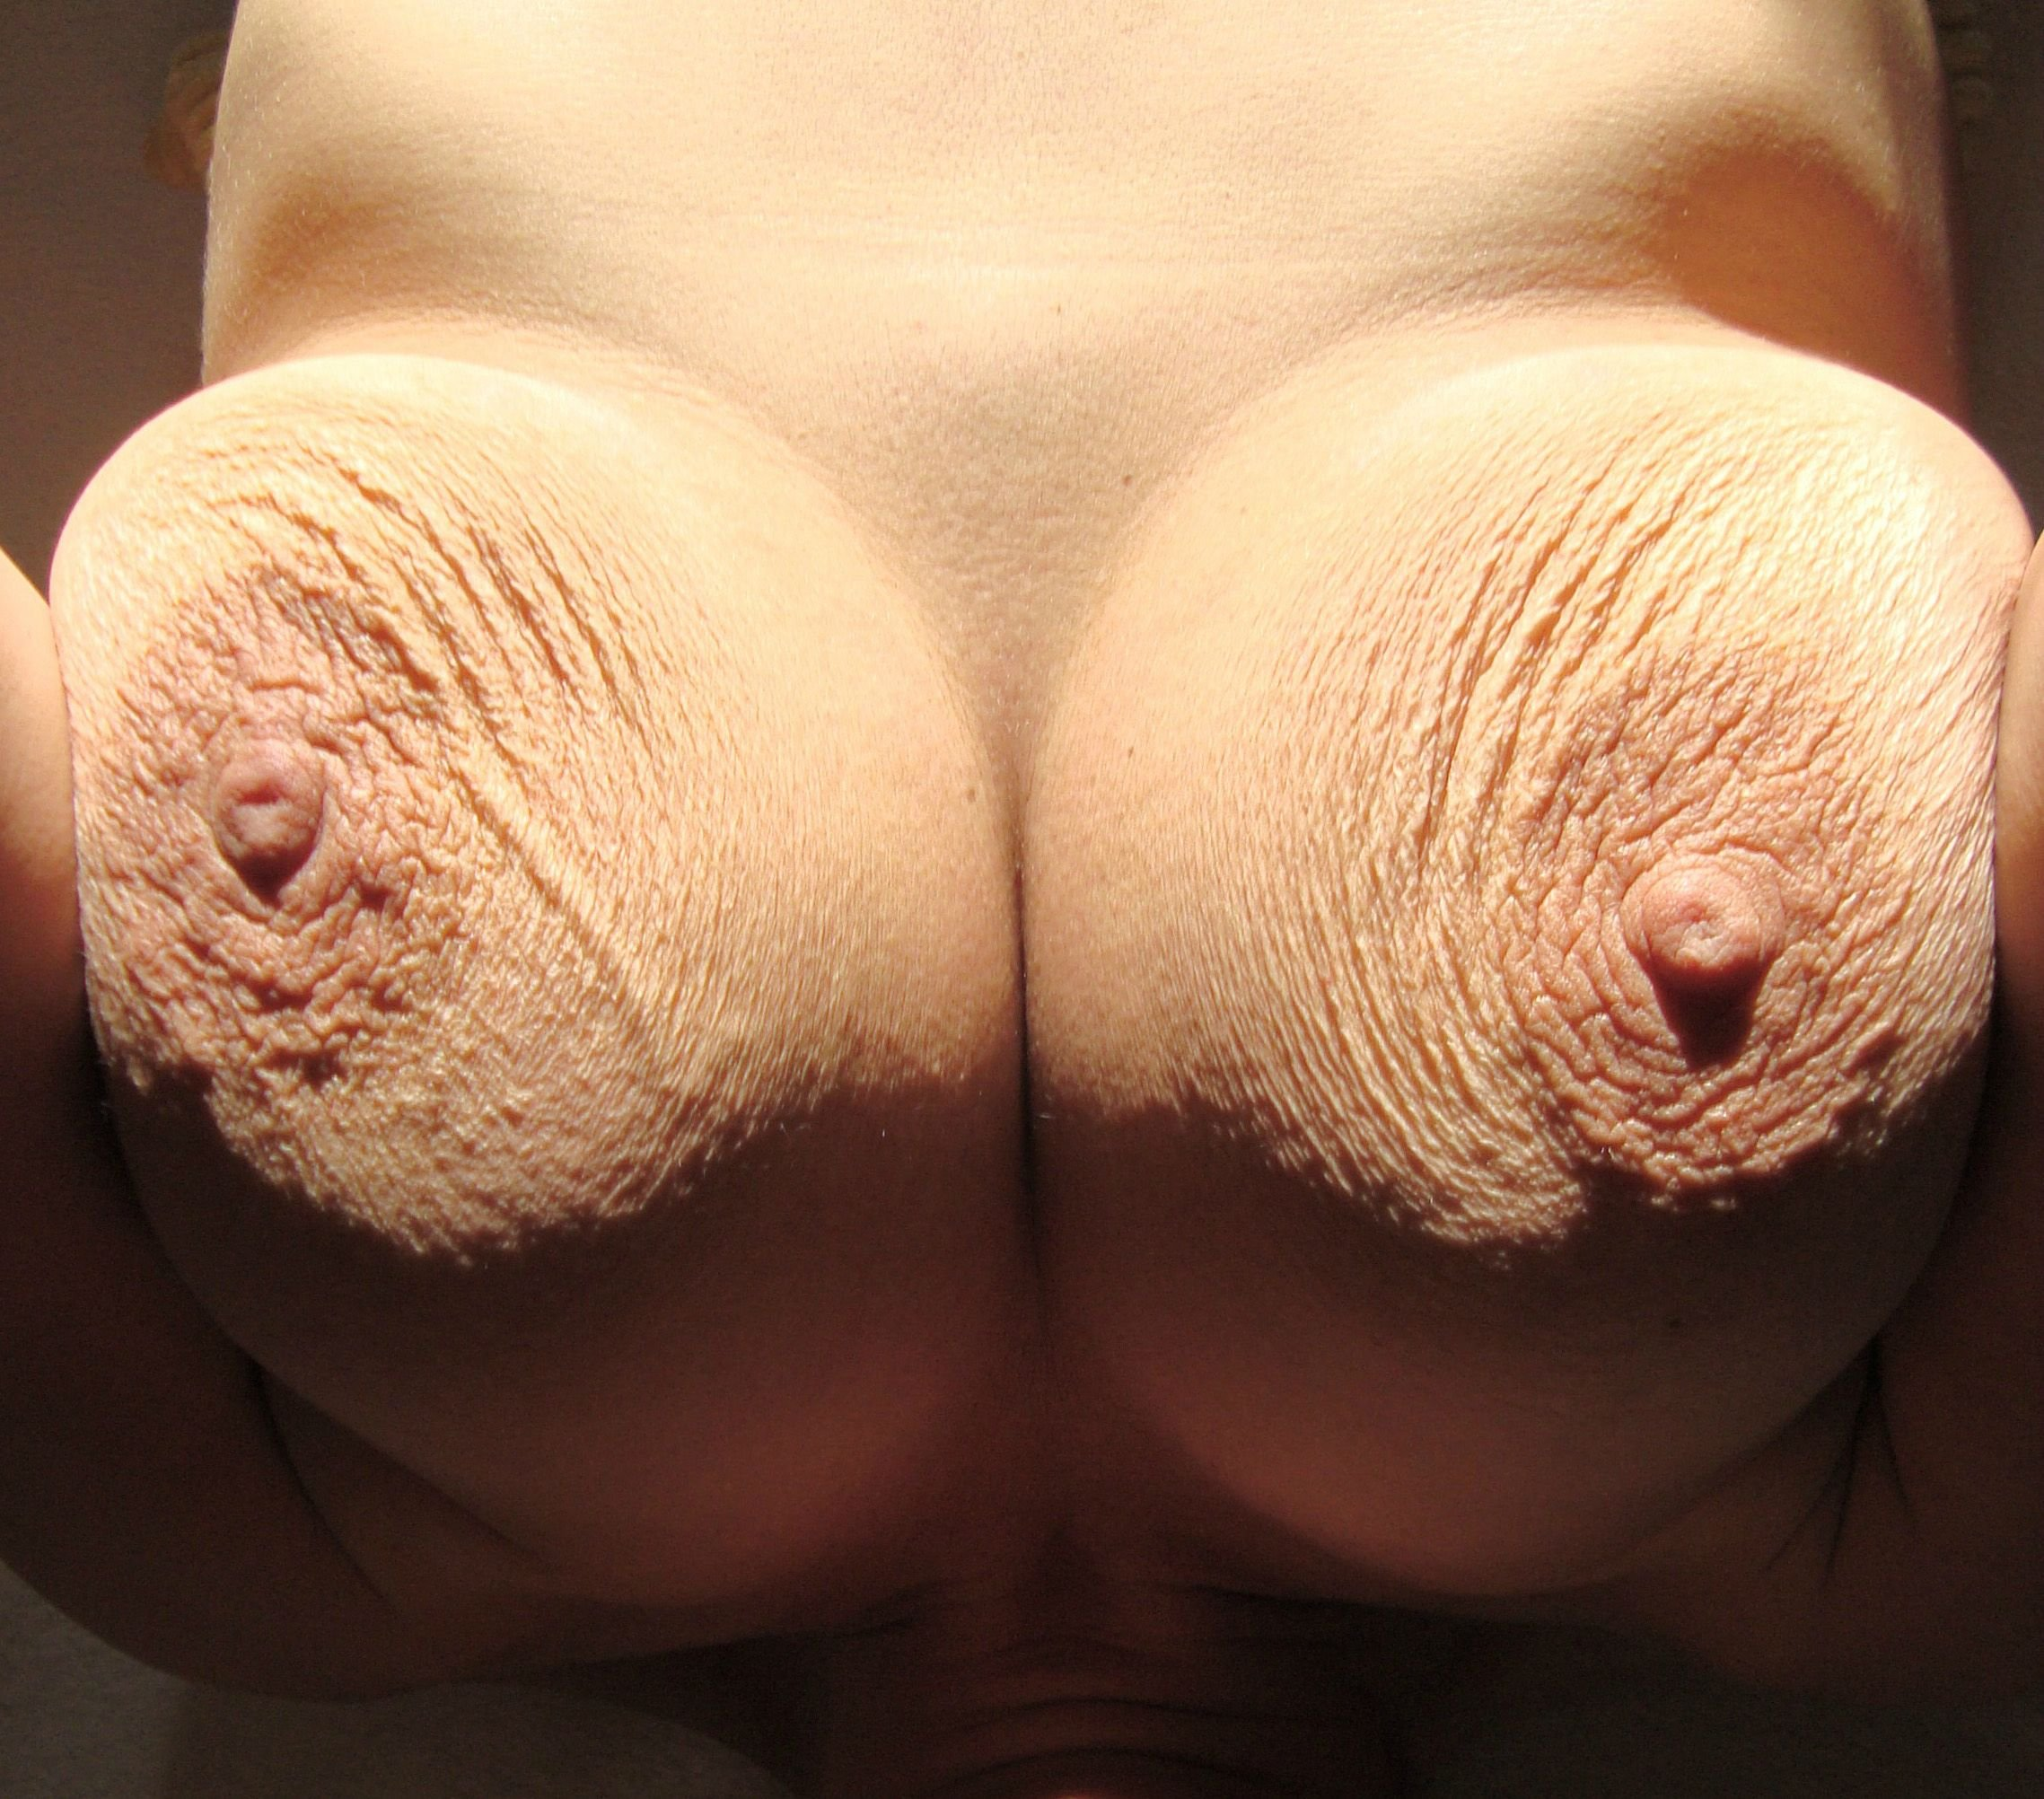 witres-porn-free-nude-pics-of-wrinkled-hard-nipples-cosplay